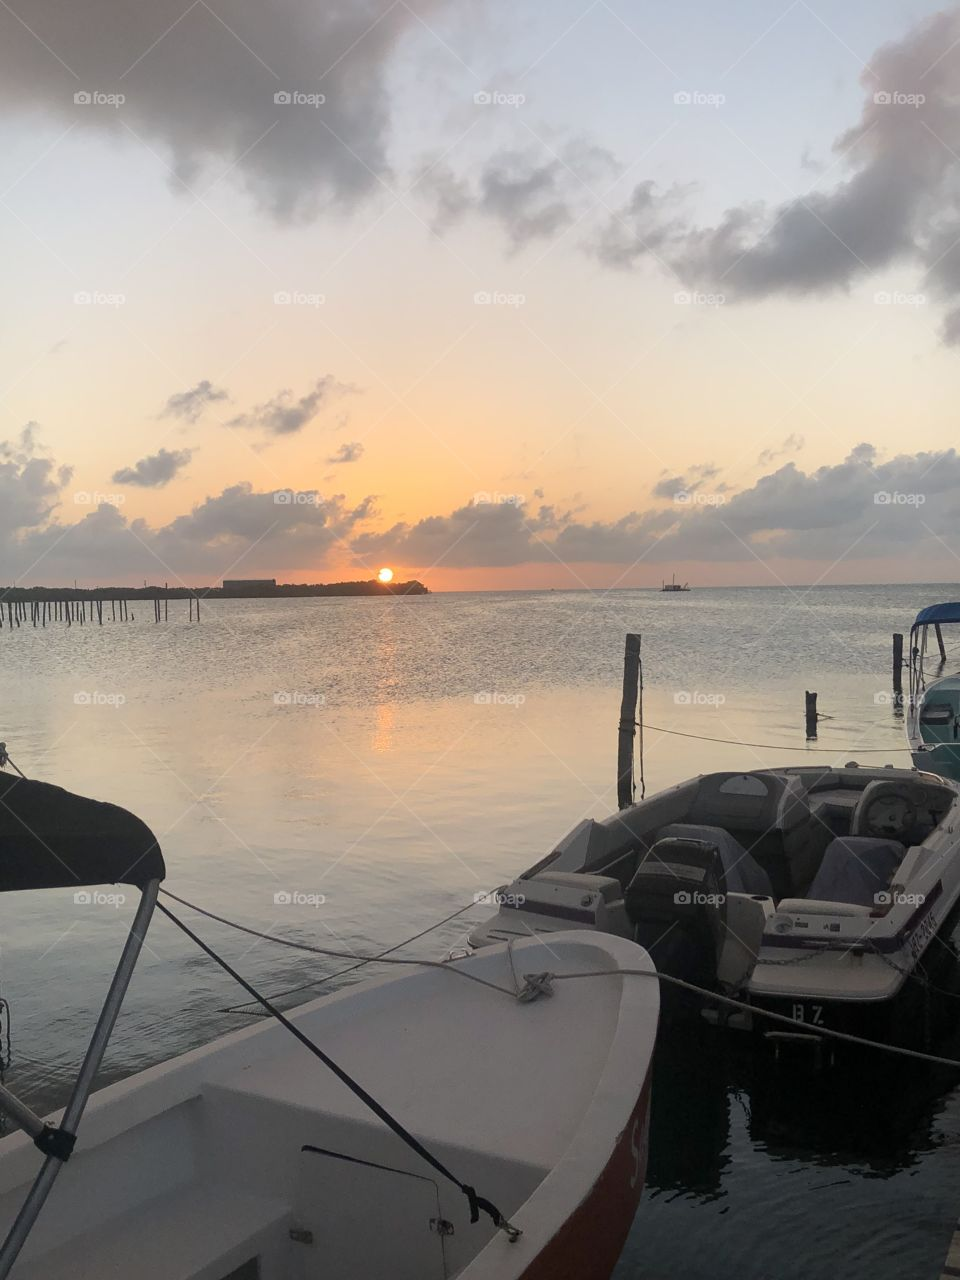 A view of an orange sunset from a boat at the dock on a Caribbean island